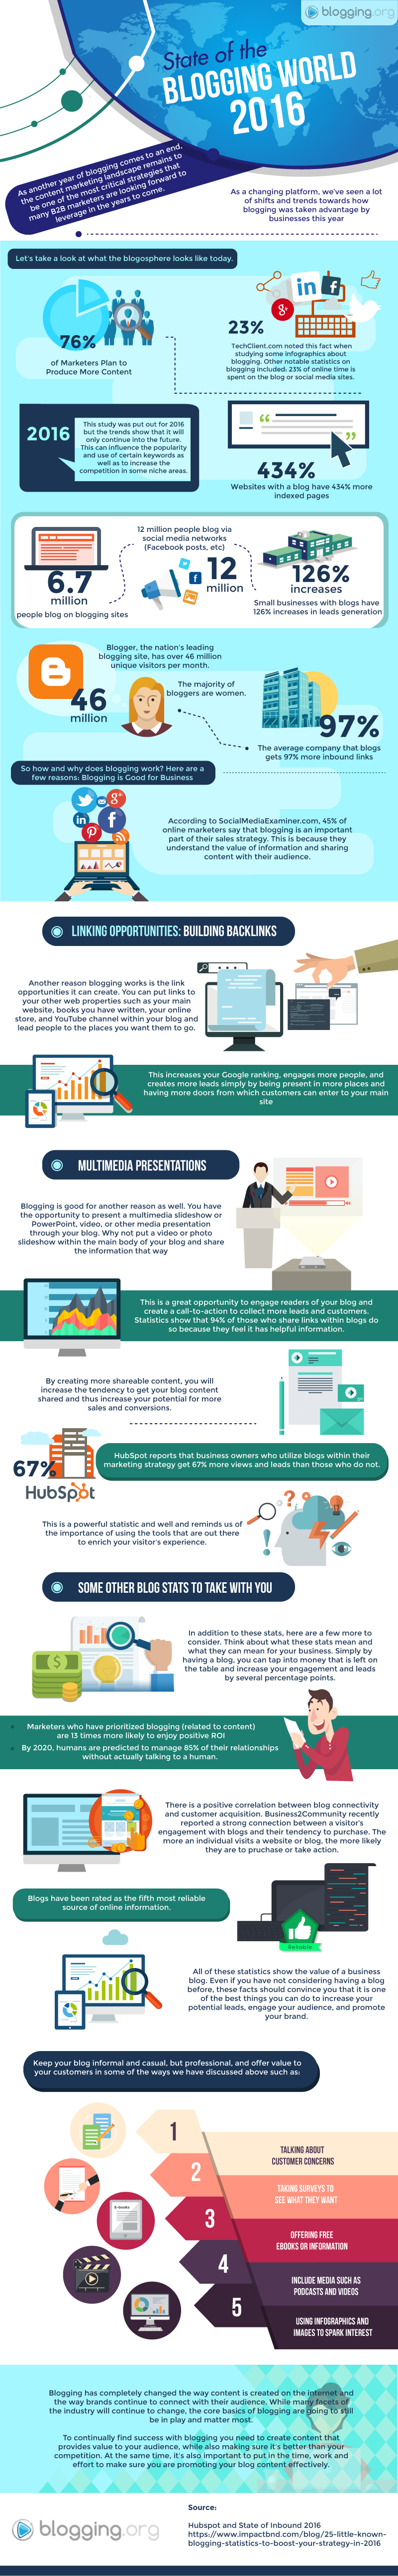 State of the Blogging World 2016 [Infographic and Stats]